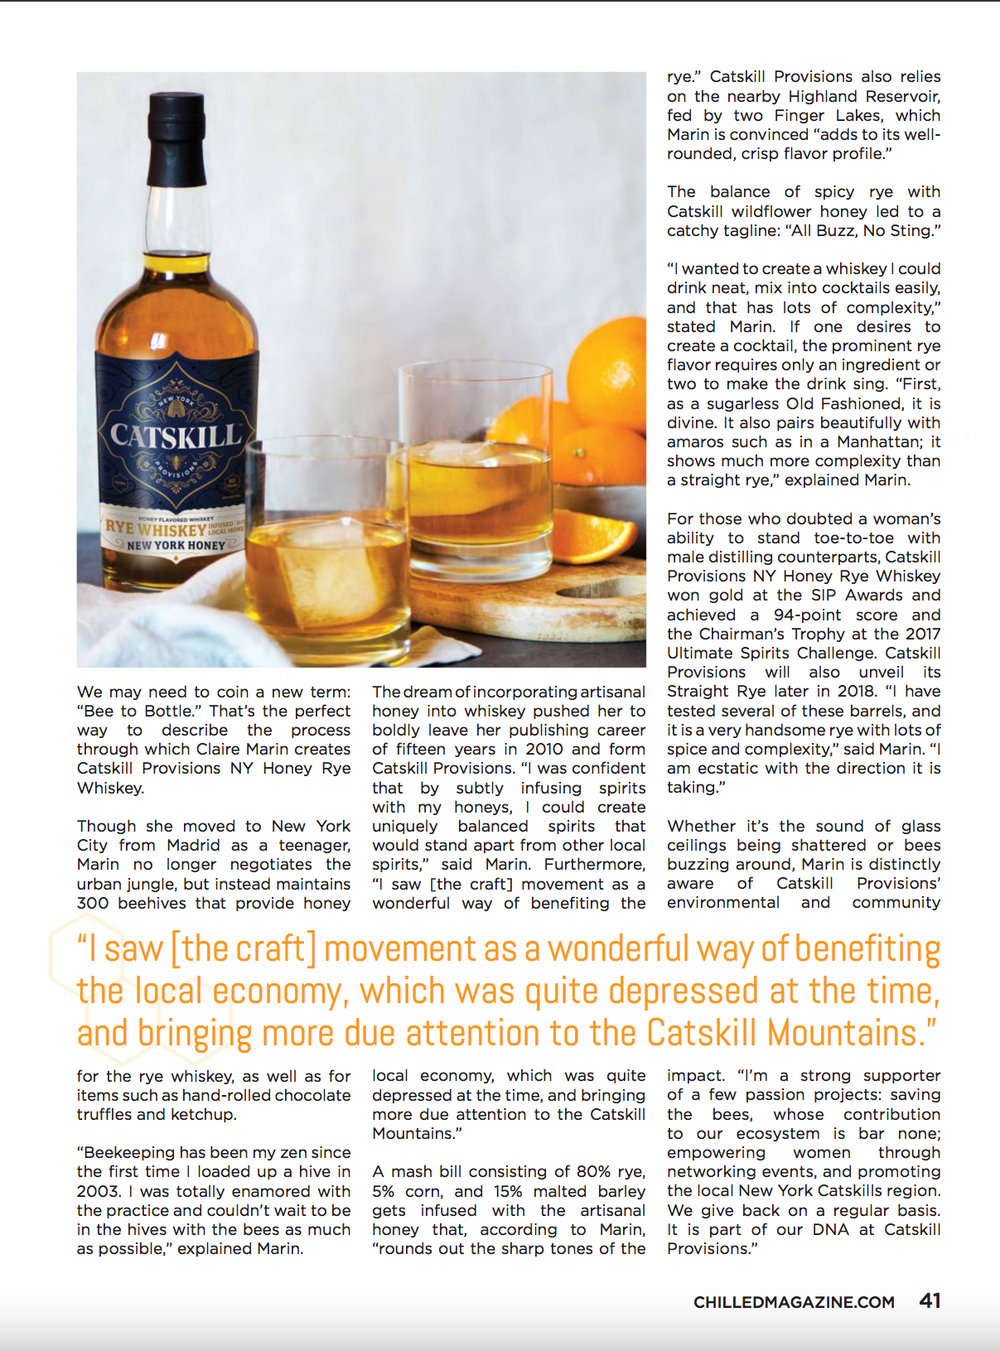 CP - Chilled Magazine - Bee To Bottle Pg 2.jpg